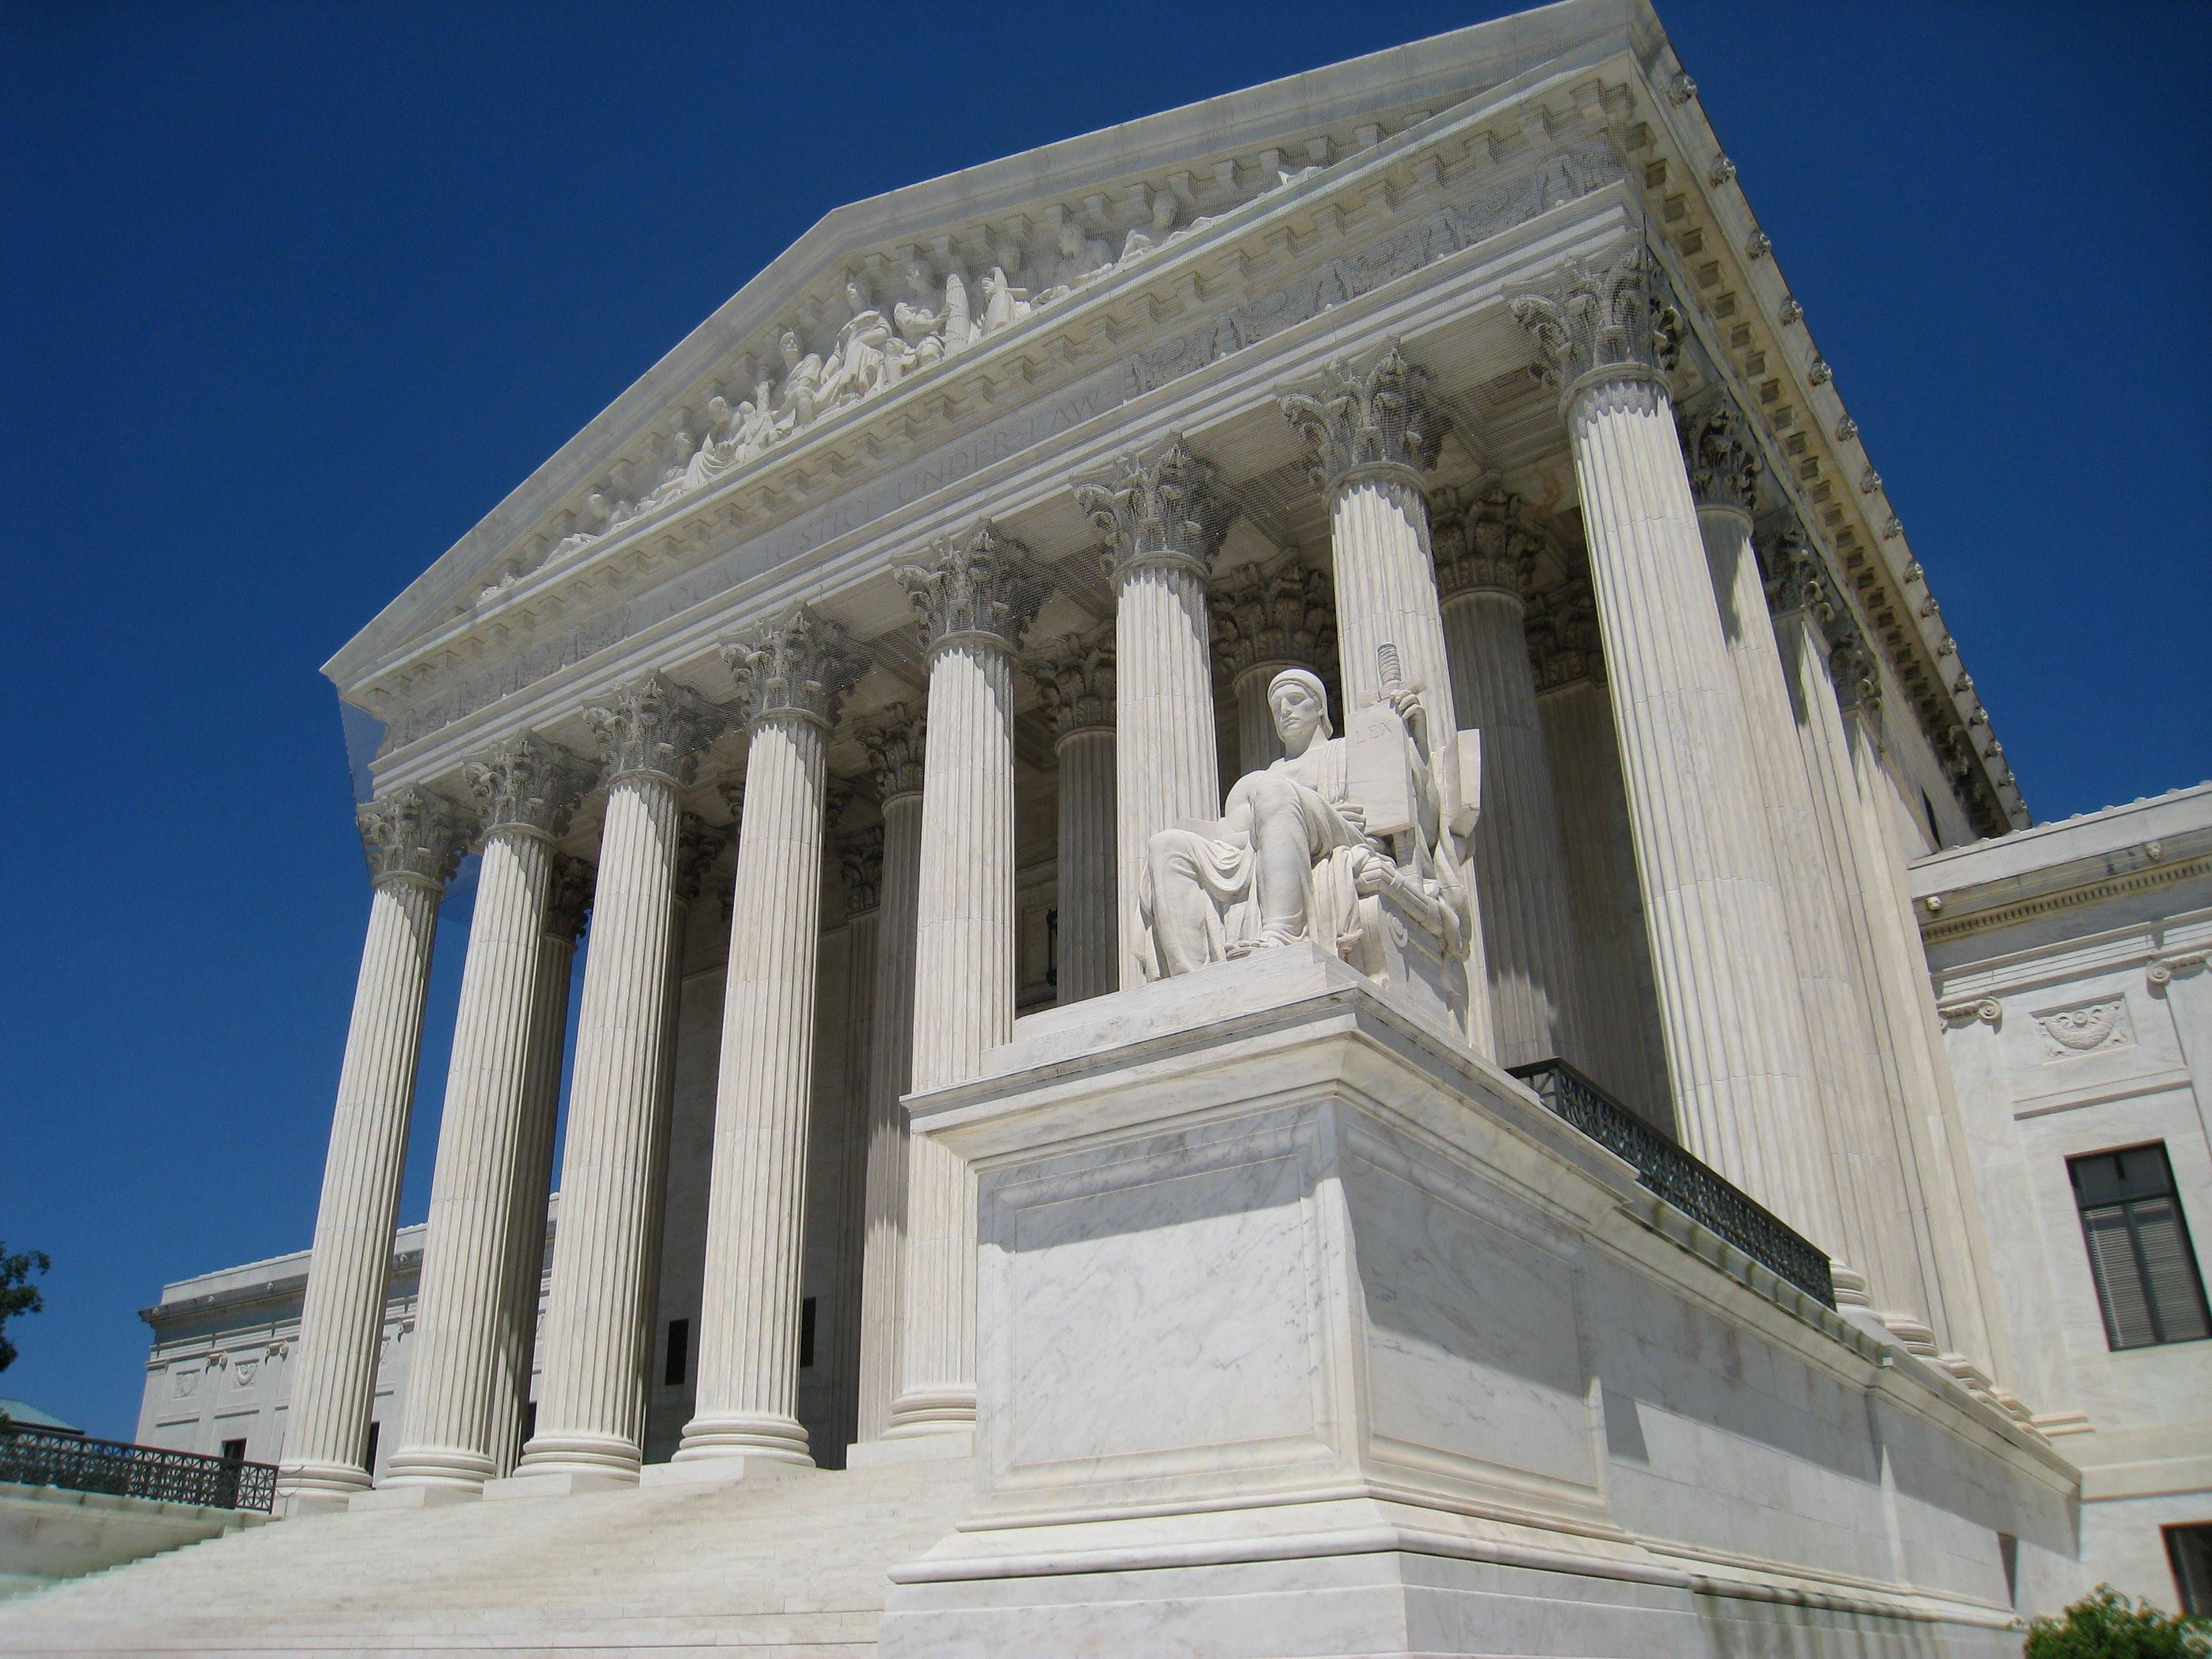 United States Supreme Court Expands Application of Title VII to Protect LGBTQ Employees